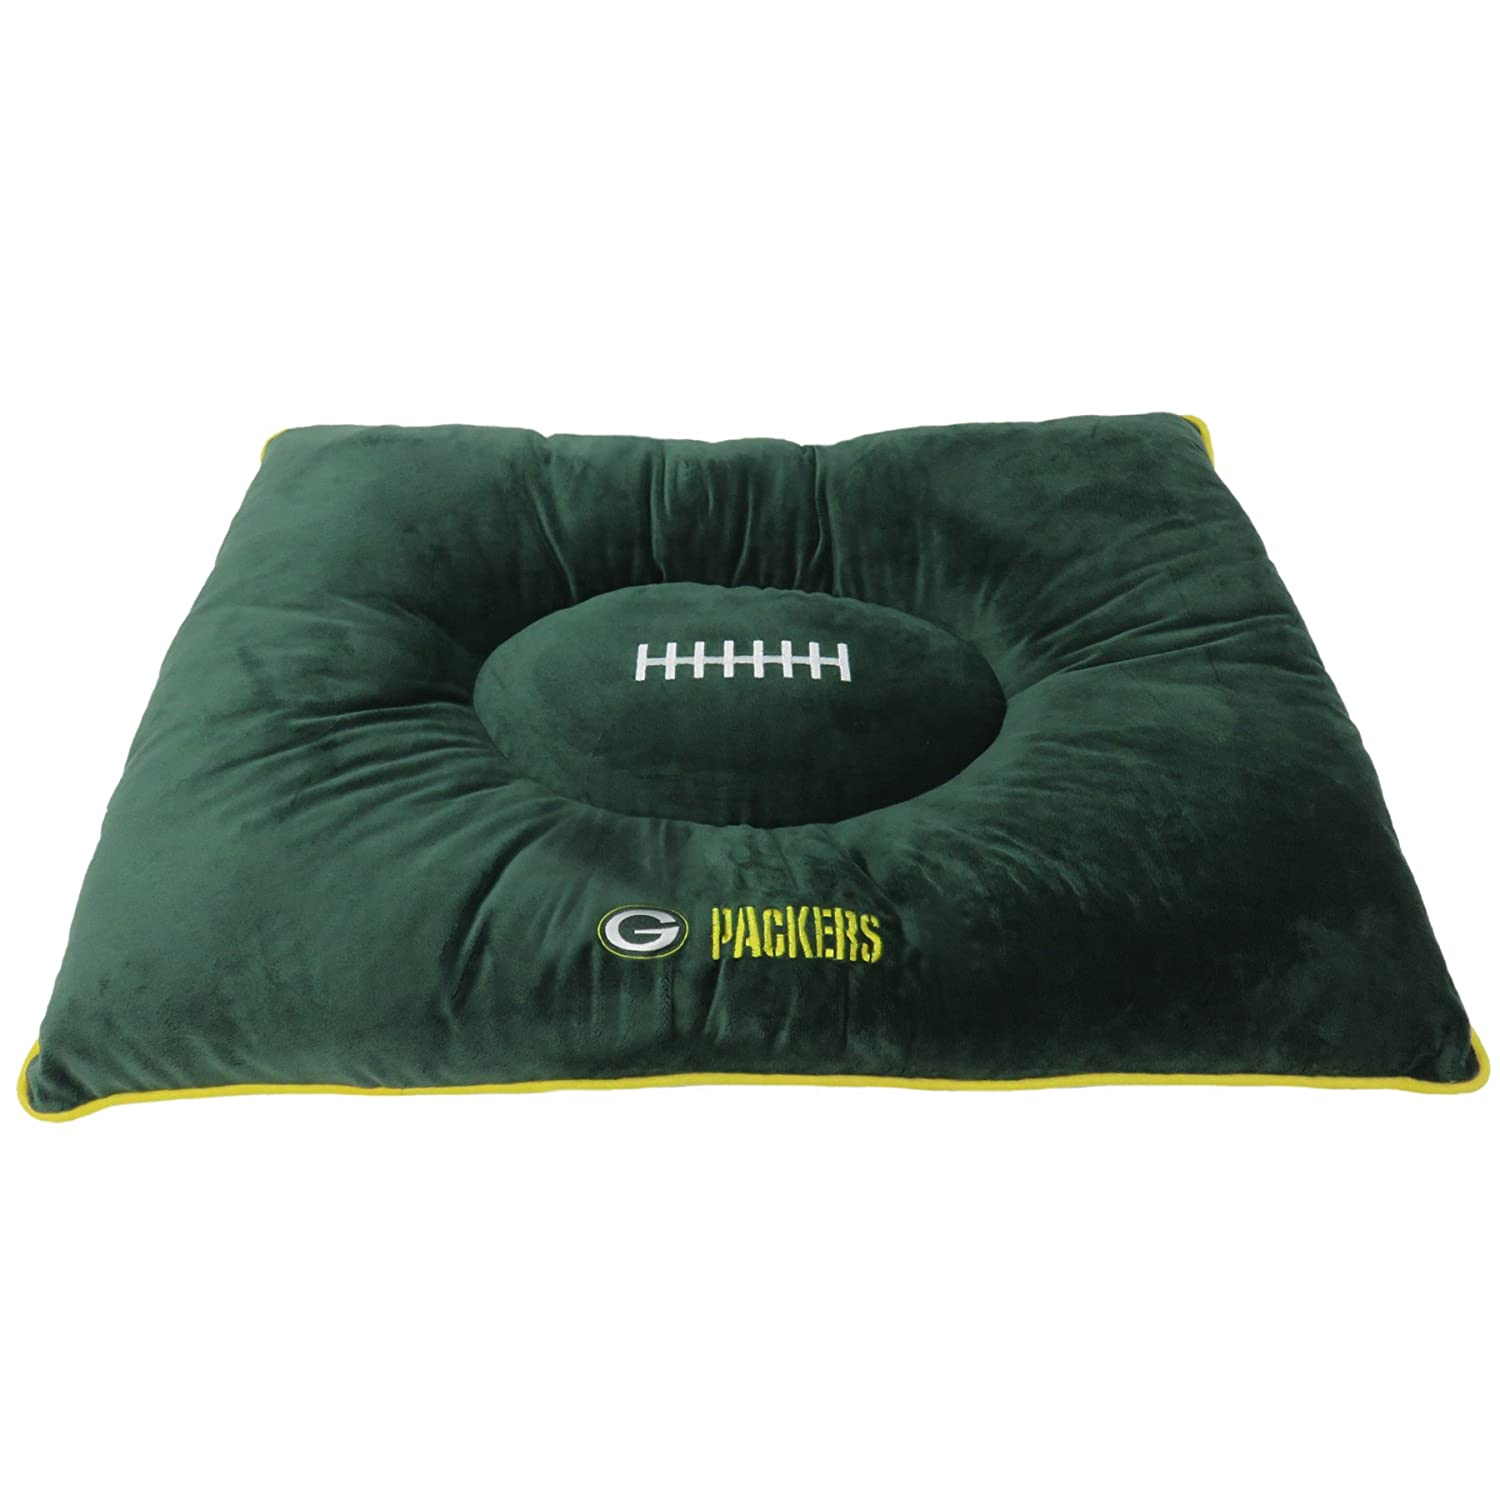 NFL PET Bed Green Bay Packers Soft & Cozy Plush Pillow Bed. Football Dog Bed. Cuddle, Warm Sports Mattress Bed for Cats & Dogs